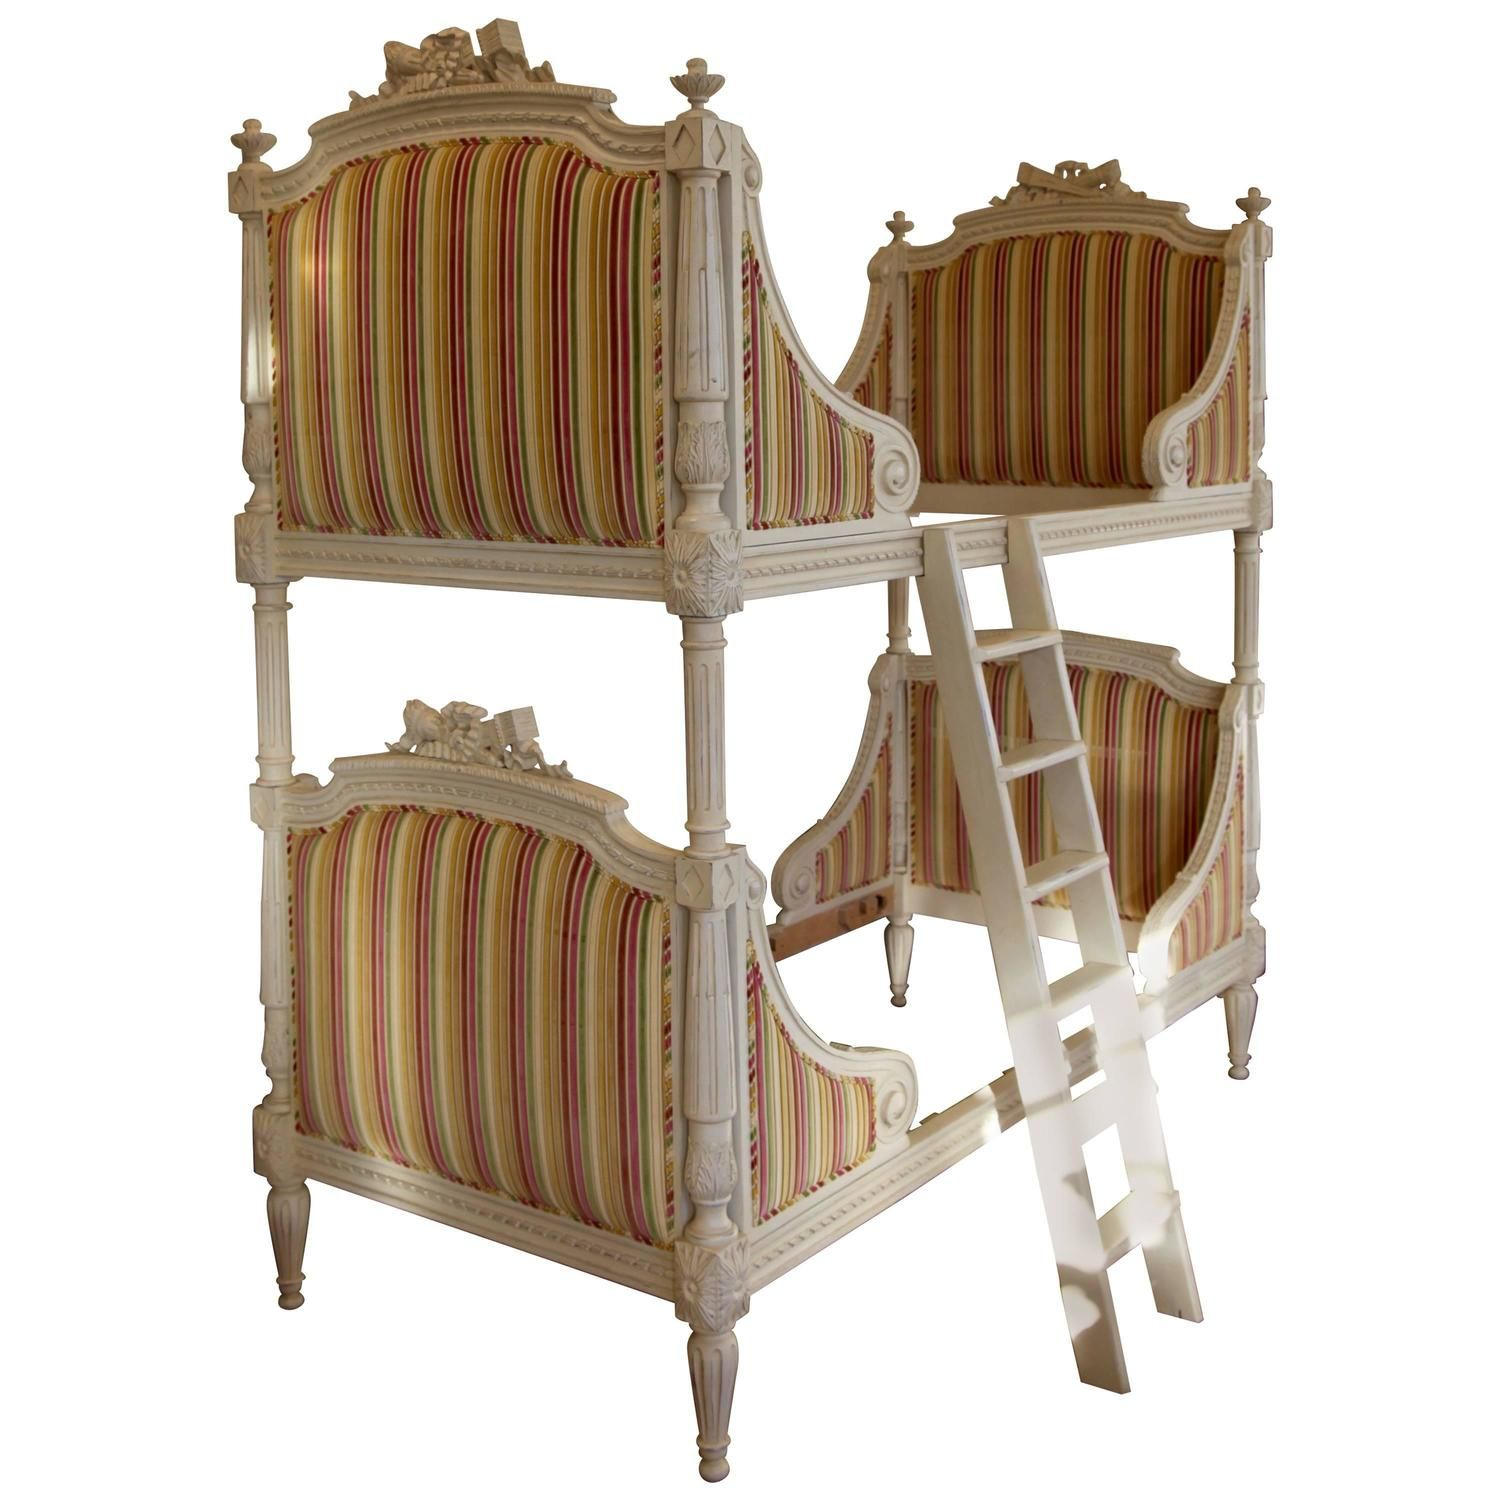 Louis XVI Style Bunk Beds Matching Pair of Single BedsLouis XVI Style Bunk Beds Matching Pair of Single Beds   Louis xvi  . Louis Style Bedroom Furniture. Home Design Ideas